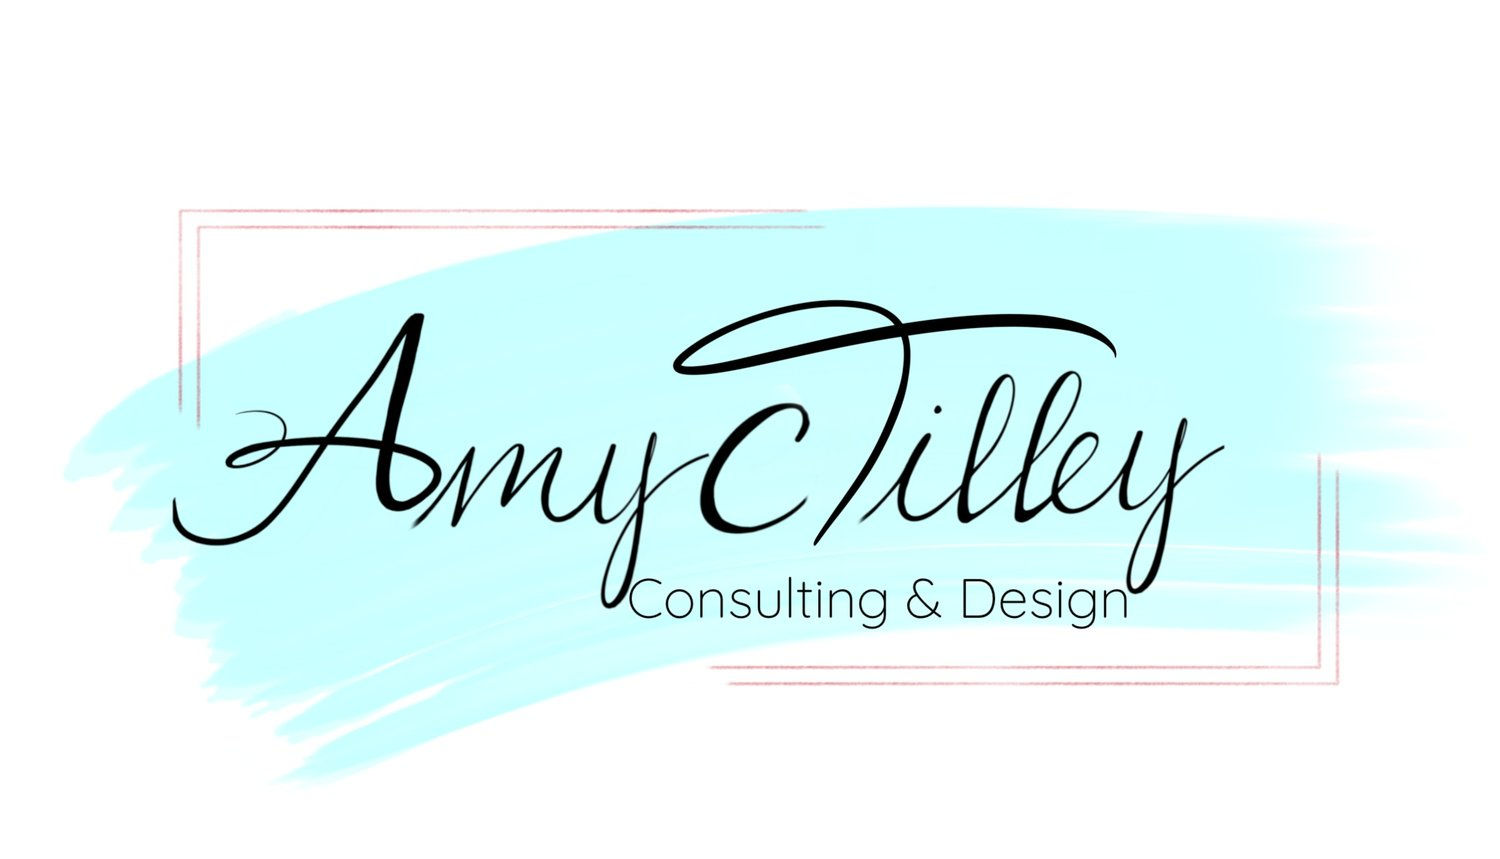 Consulting & Design | Amy C. Tilley